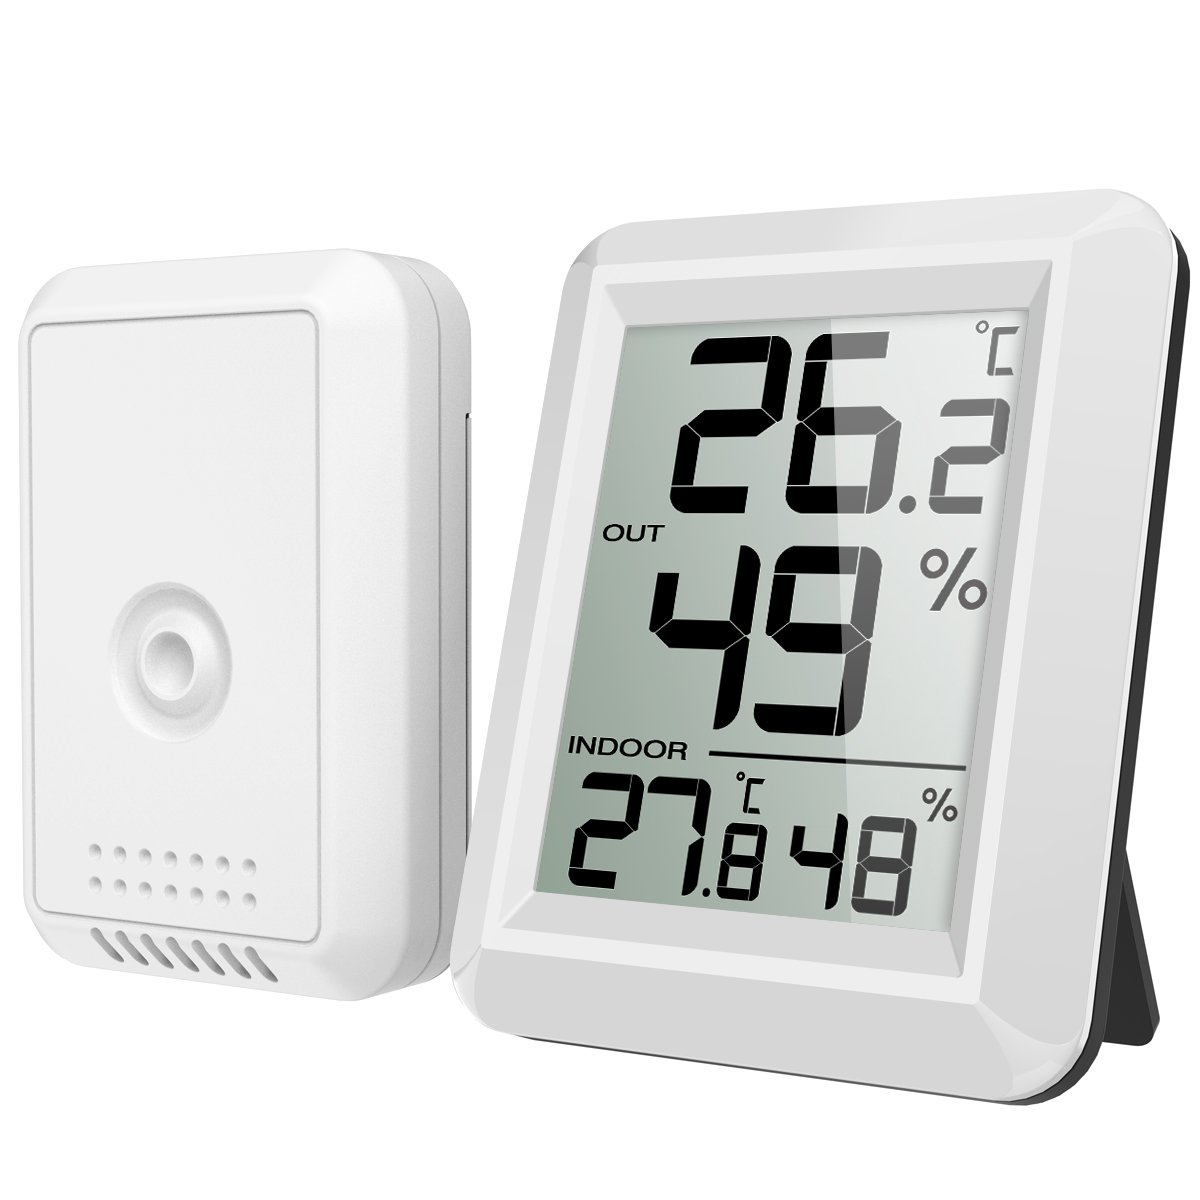 AMIR Indoor Outdoor Thermometer, Digital Hygrometer, Humidity Monitor Wireless LCD Display, Room Thermometer Humidity Gauge Home, Office, Baby Room, etc(Mini, Battery not Included)